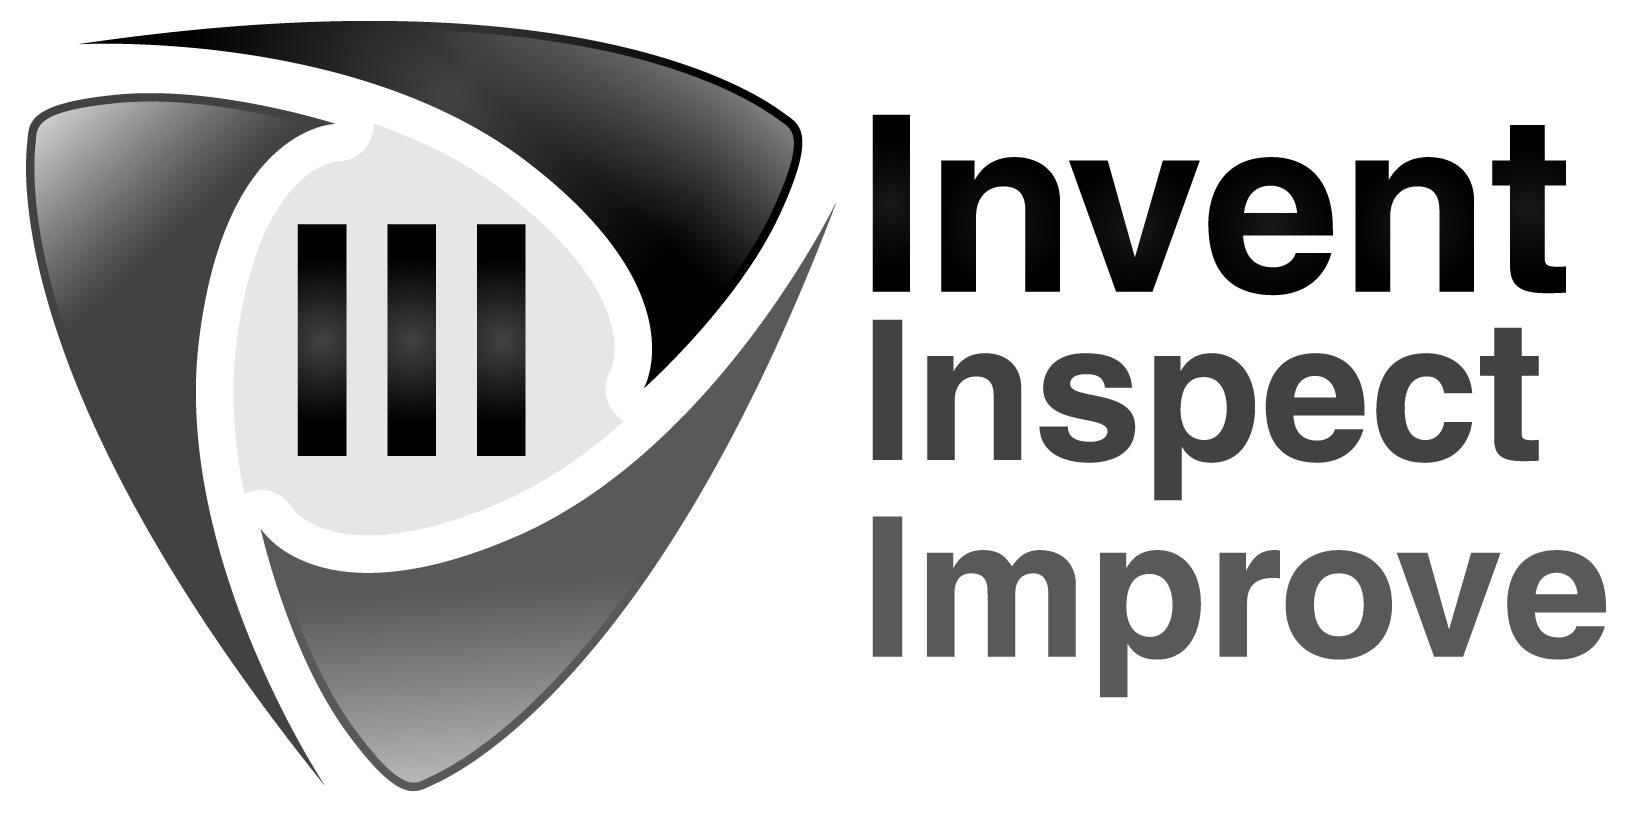 III Invent Inspect Improvement AB